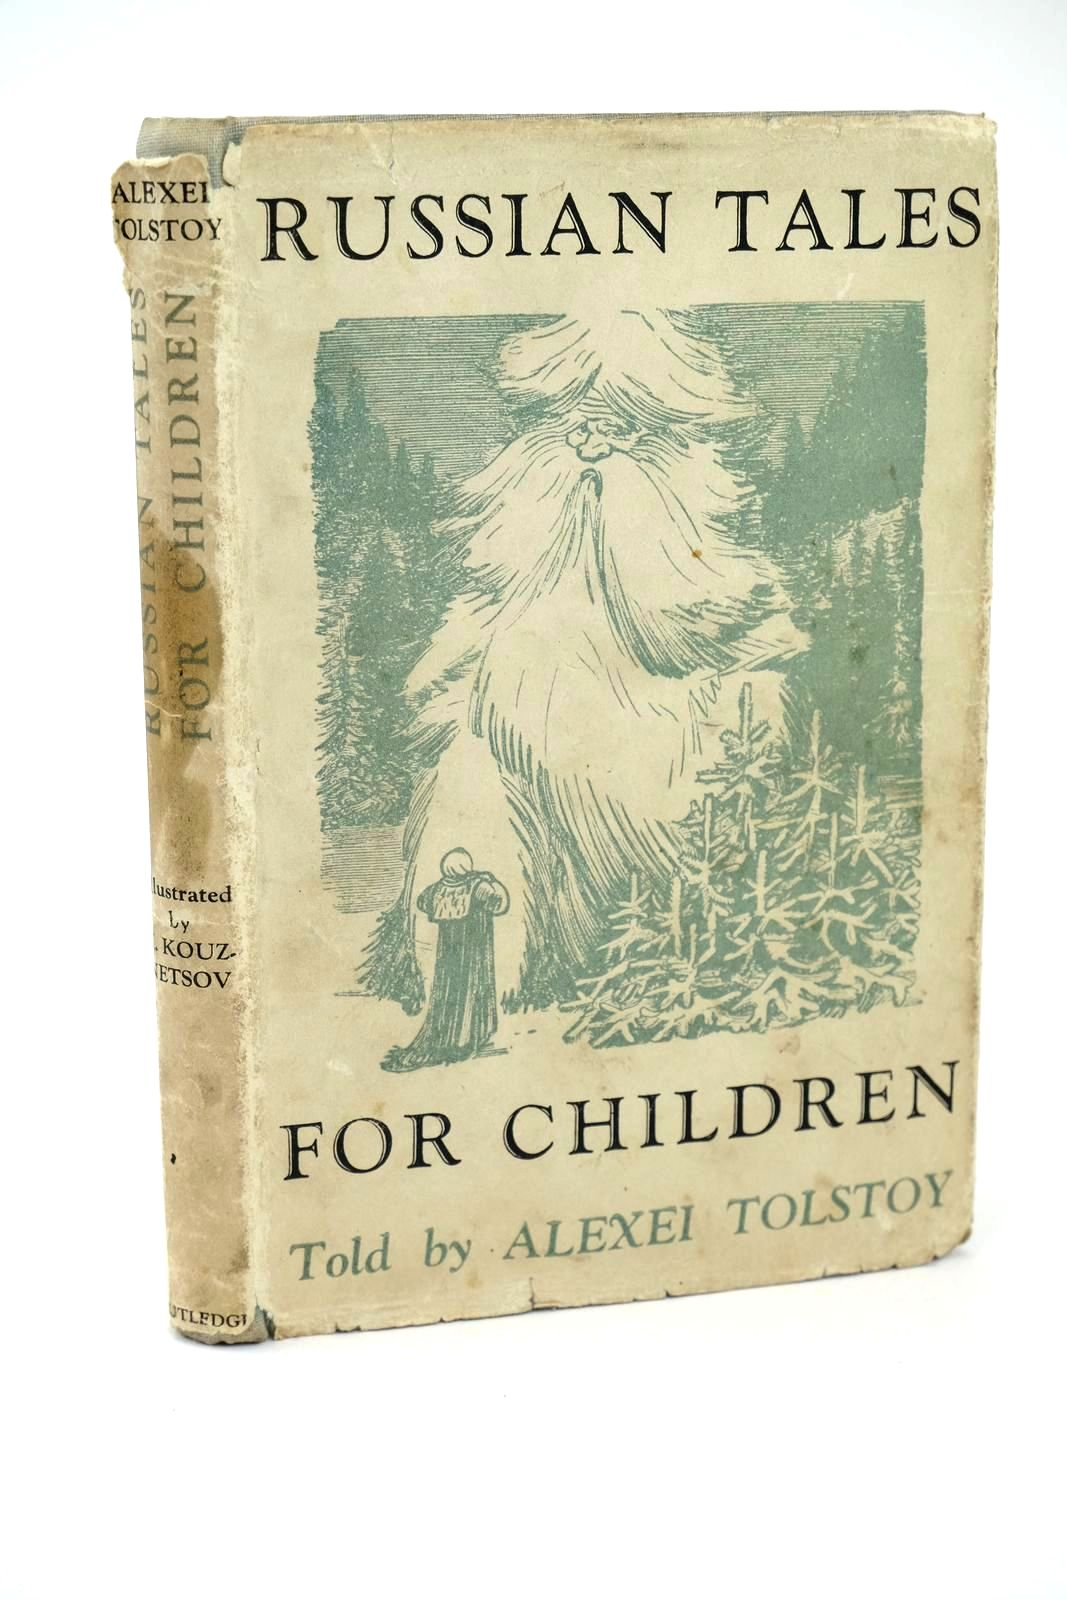 Photo of RUSSIAN TALES FOR CHILDREN written by Tolstoy, Alexei illustrated by Kouznetsov, K. published by George Routledge & Sons Ltd. (STOCK CODE: 1318520)  for sale by Stella & Rose's Books